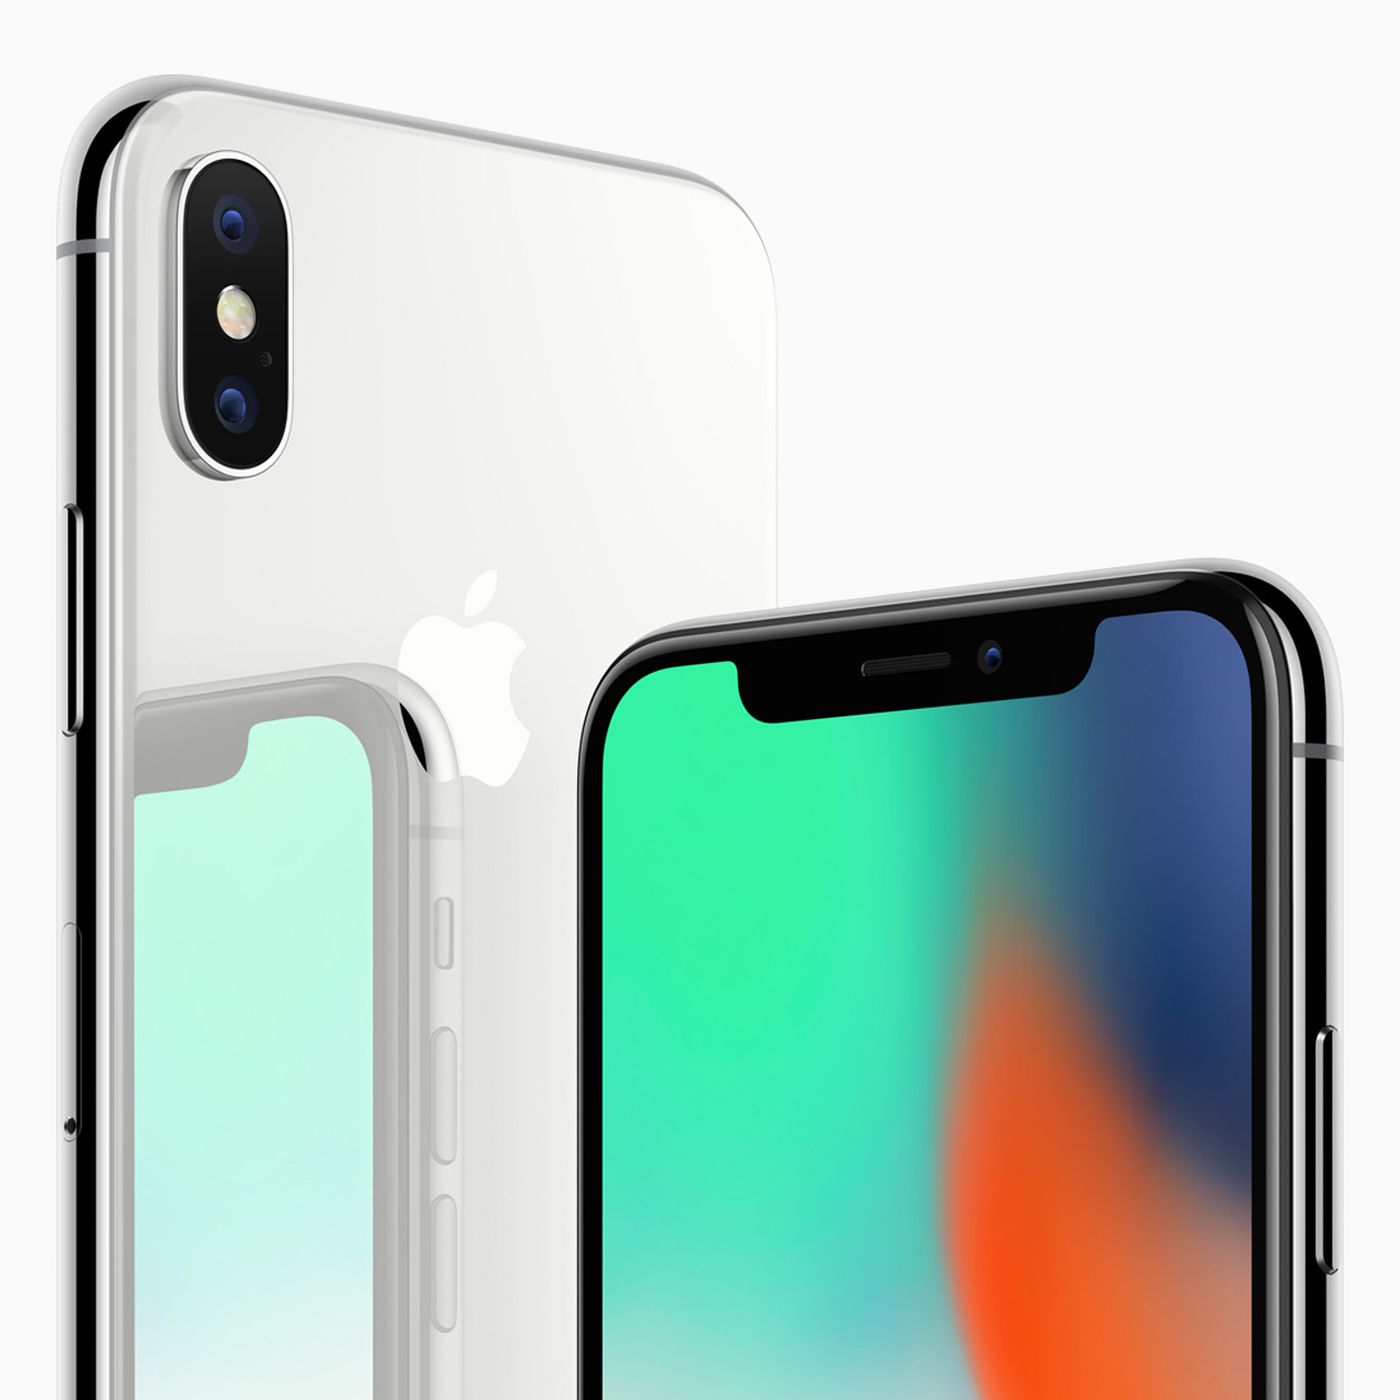 Verizon offers up to $300 toward iPhone X with device trade